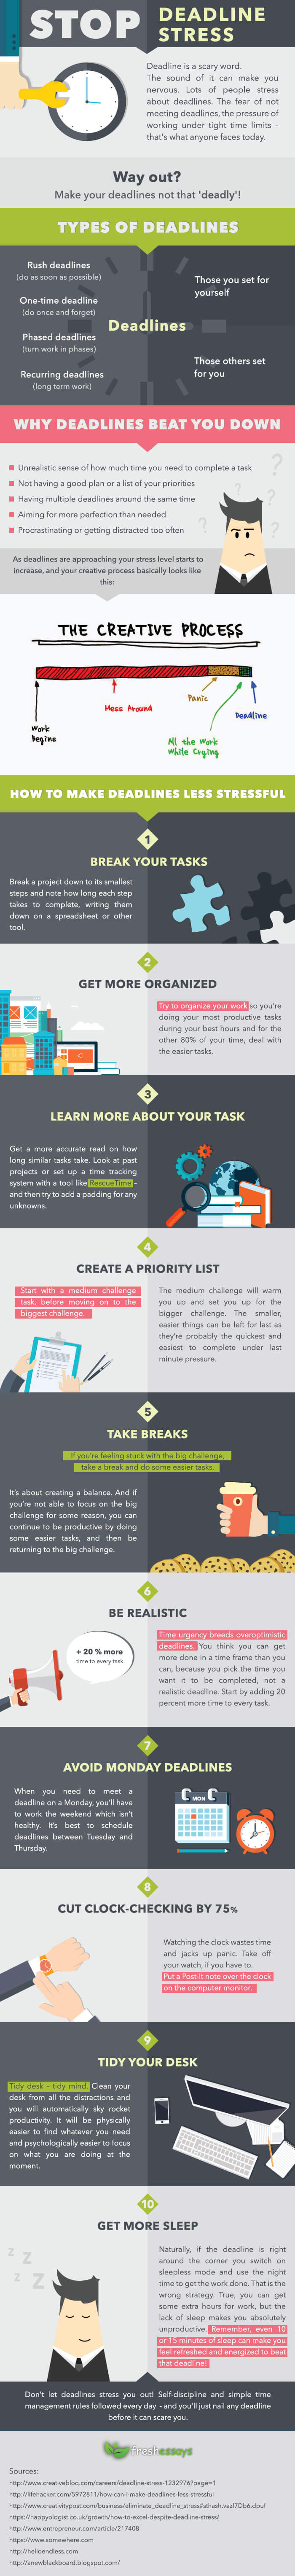 Image titled Tips to Avoid Deadline Stress in 10 Easy Ways